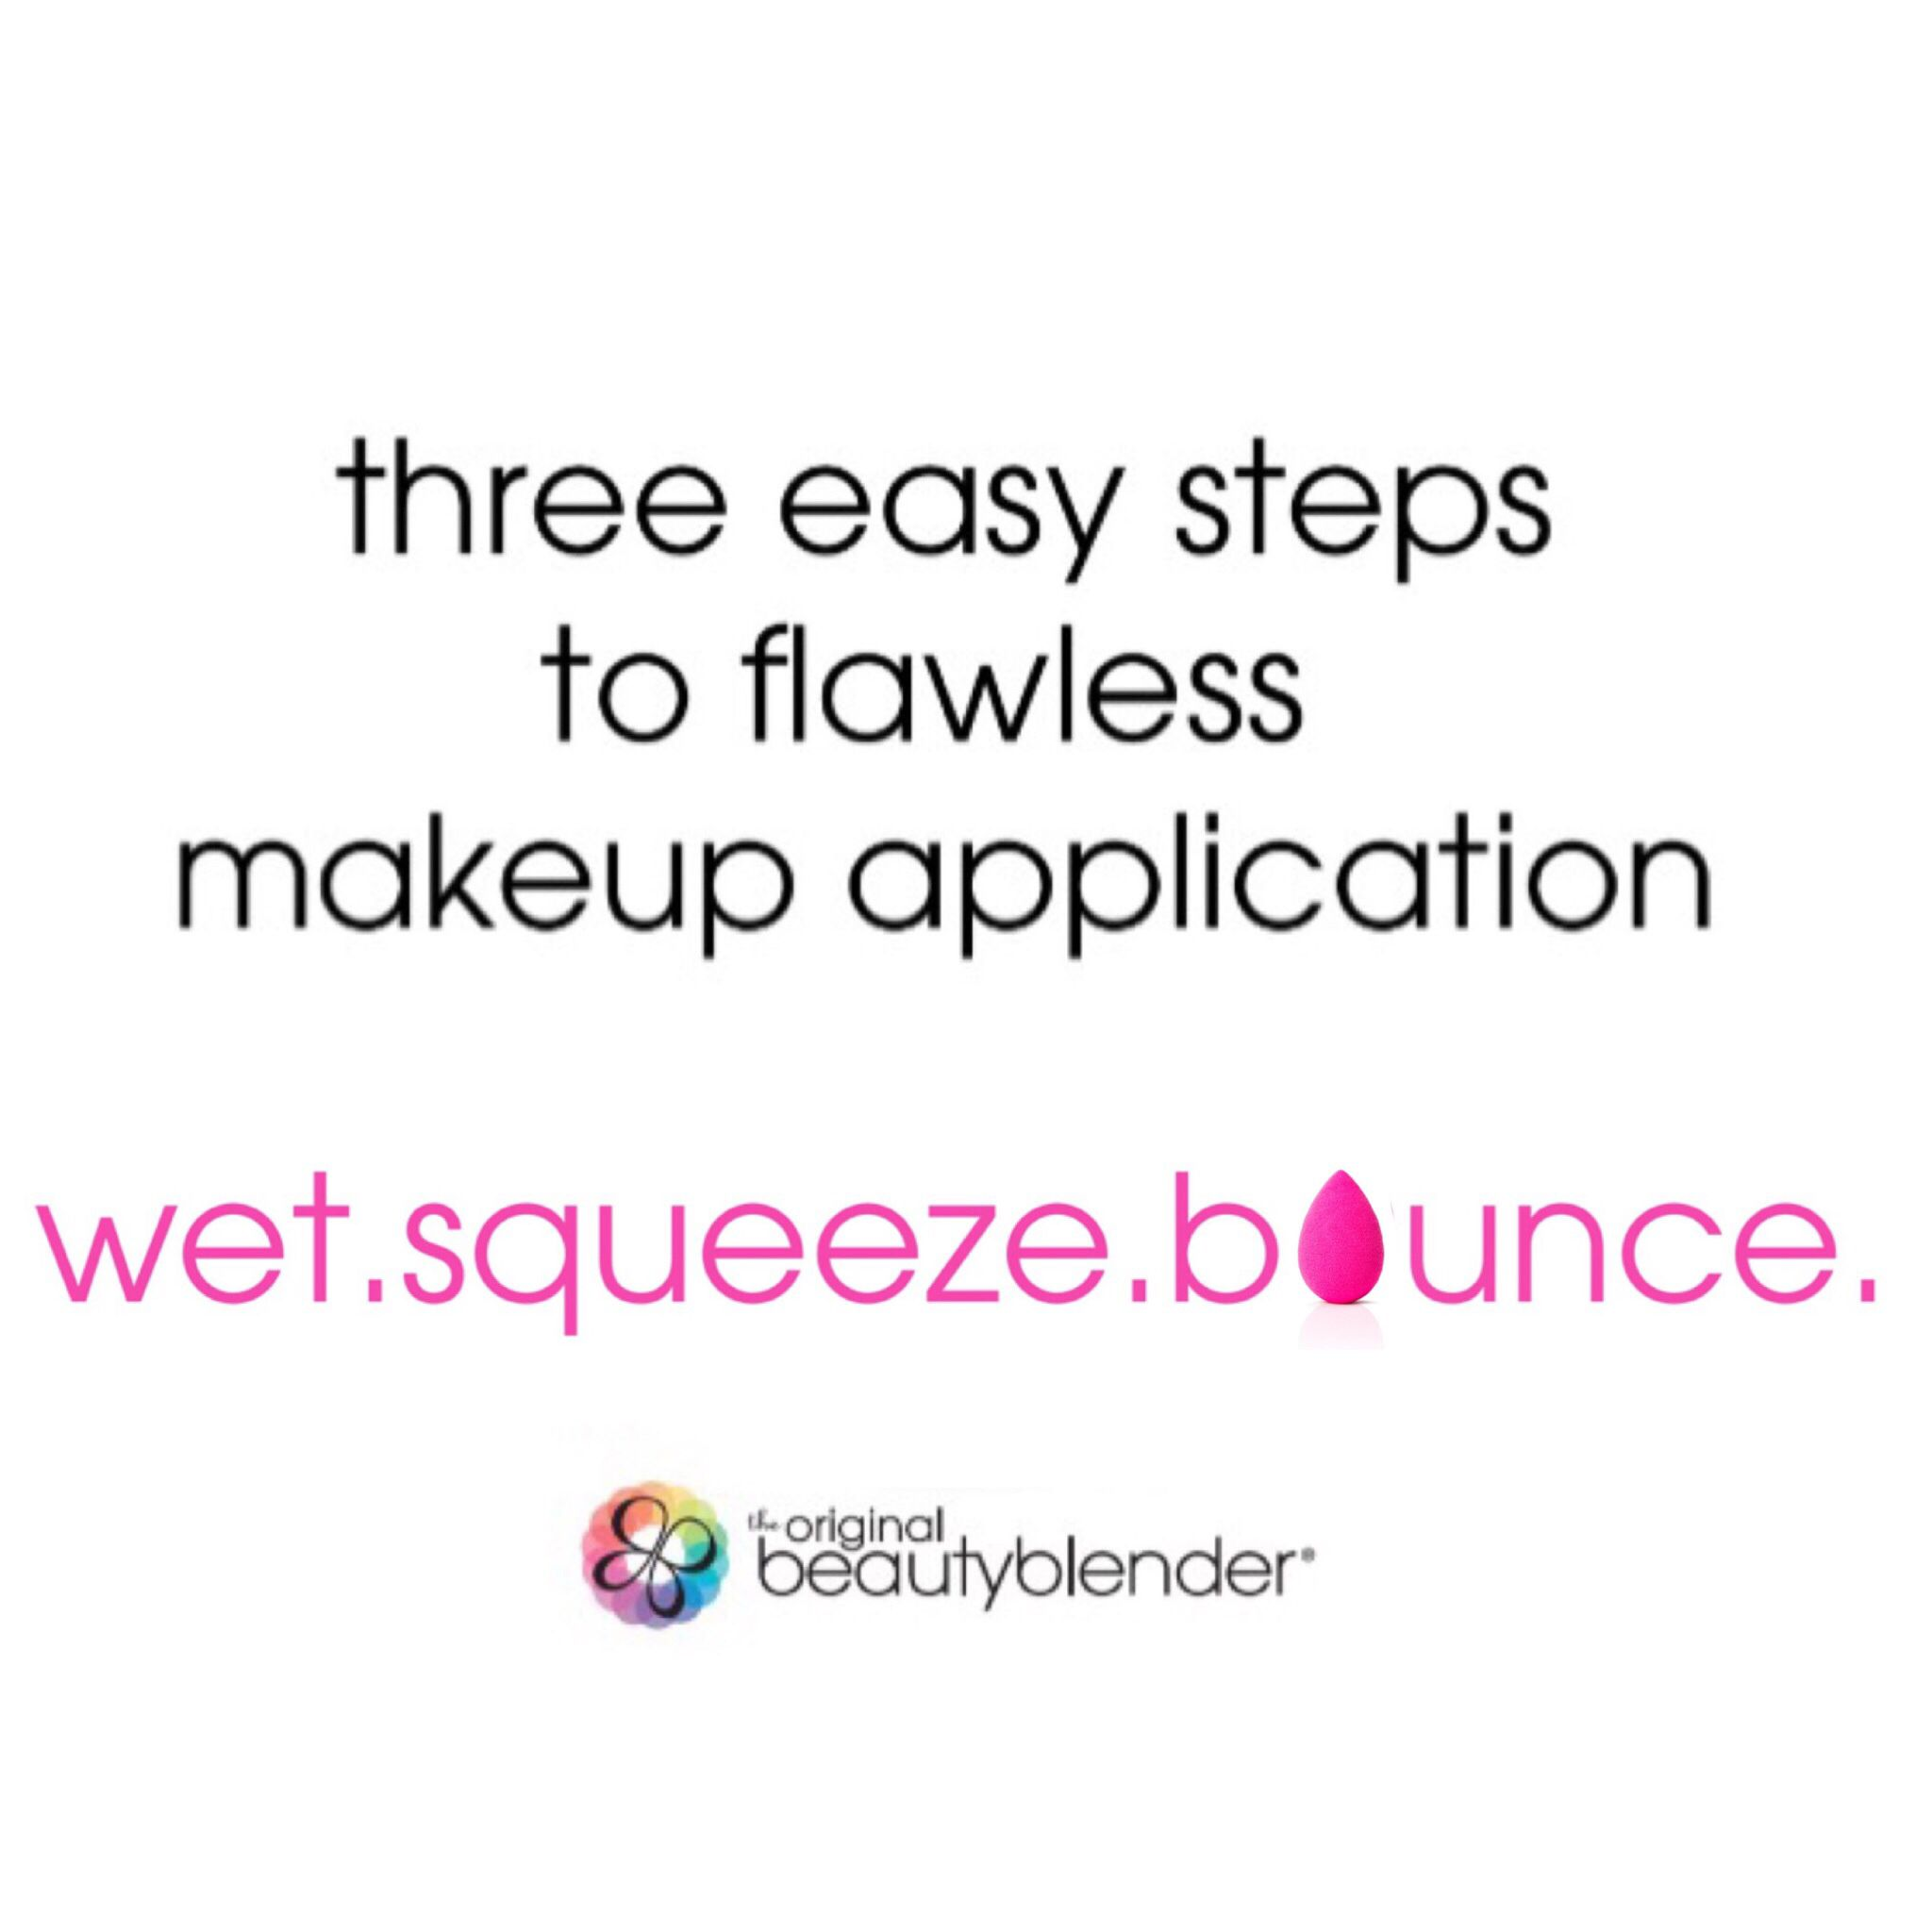 three easy steps to flawless makeup application by the